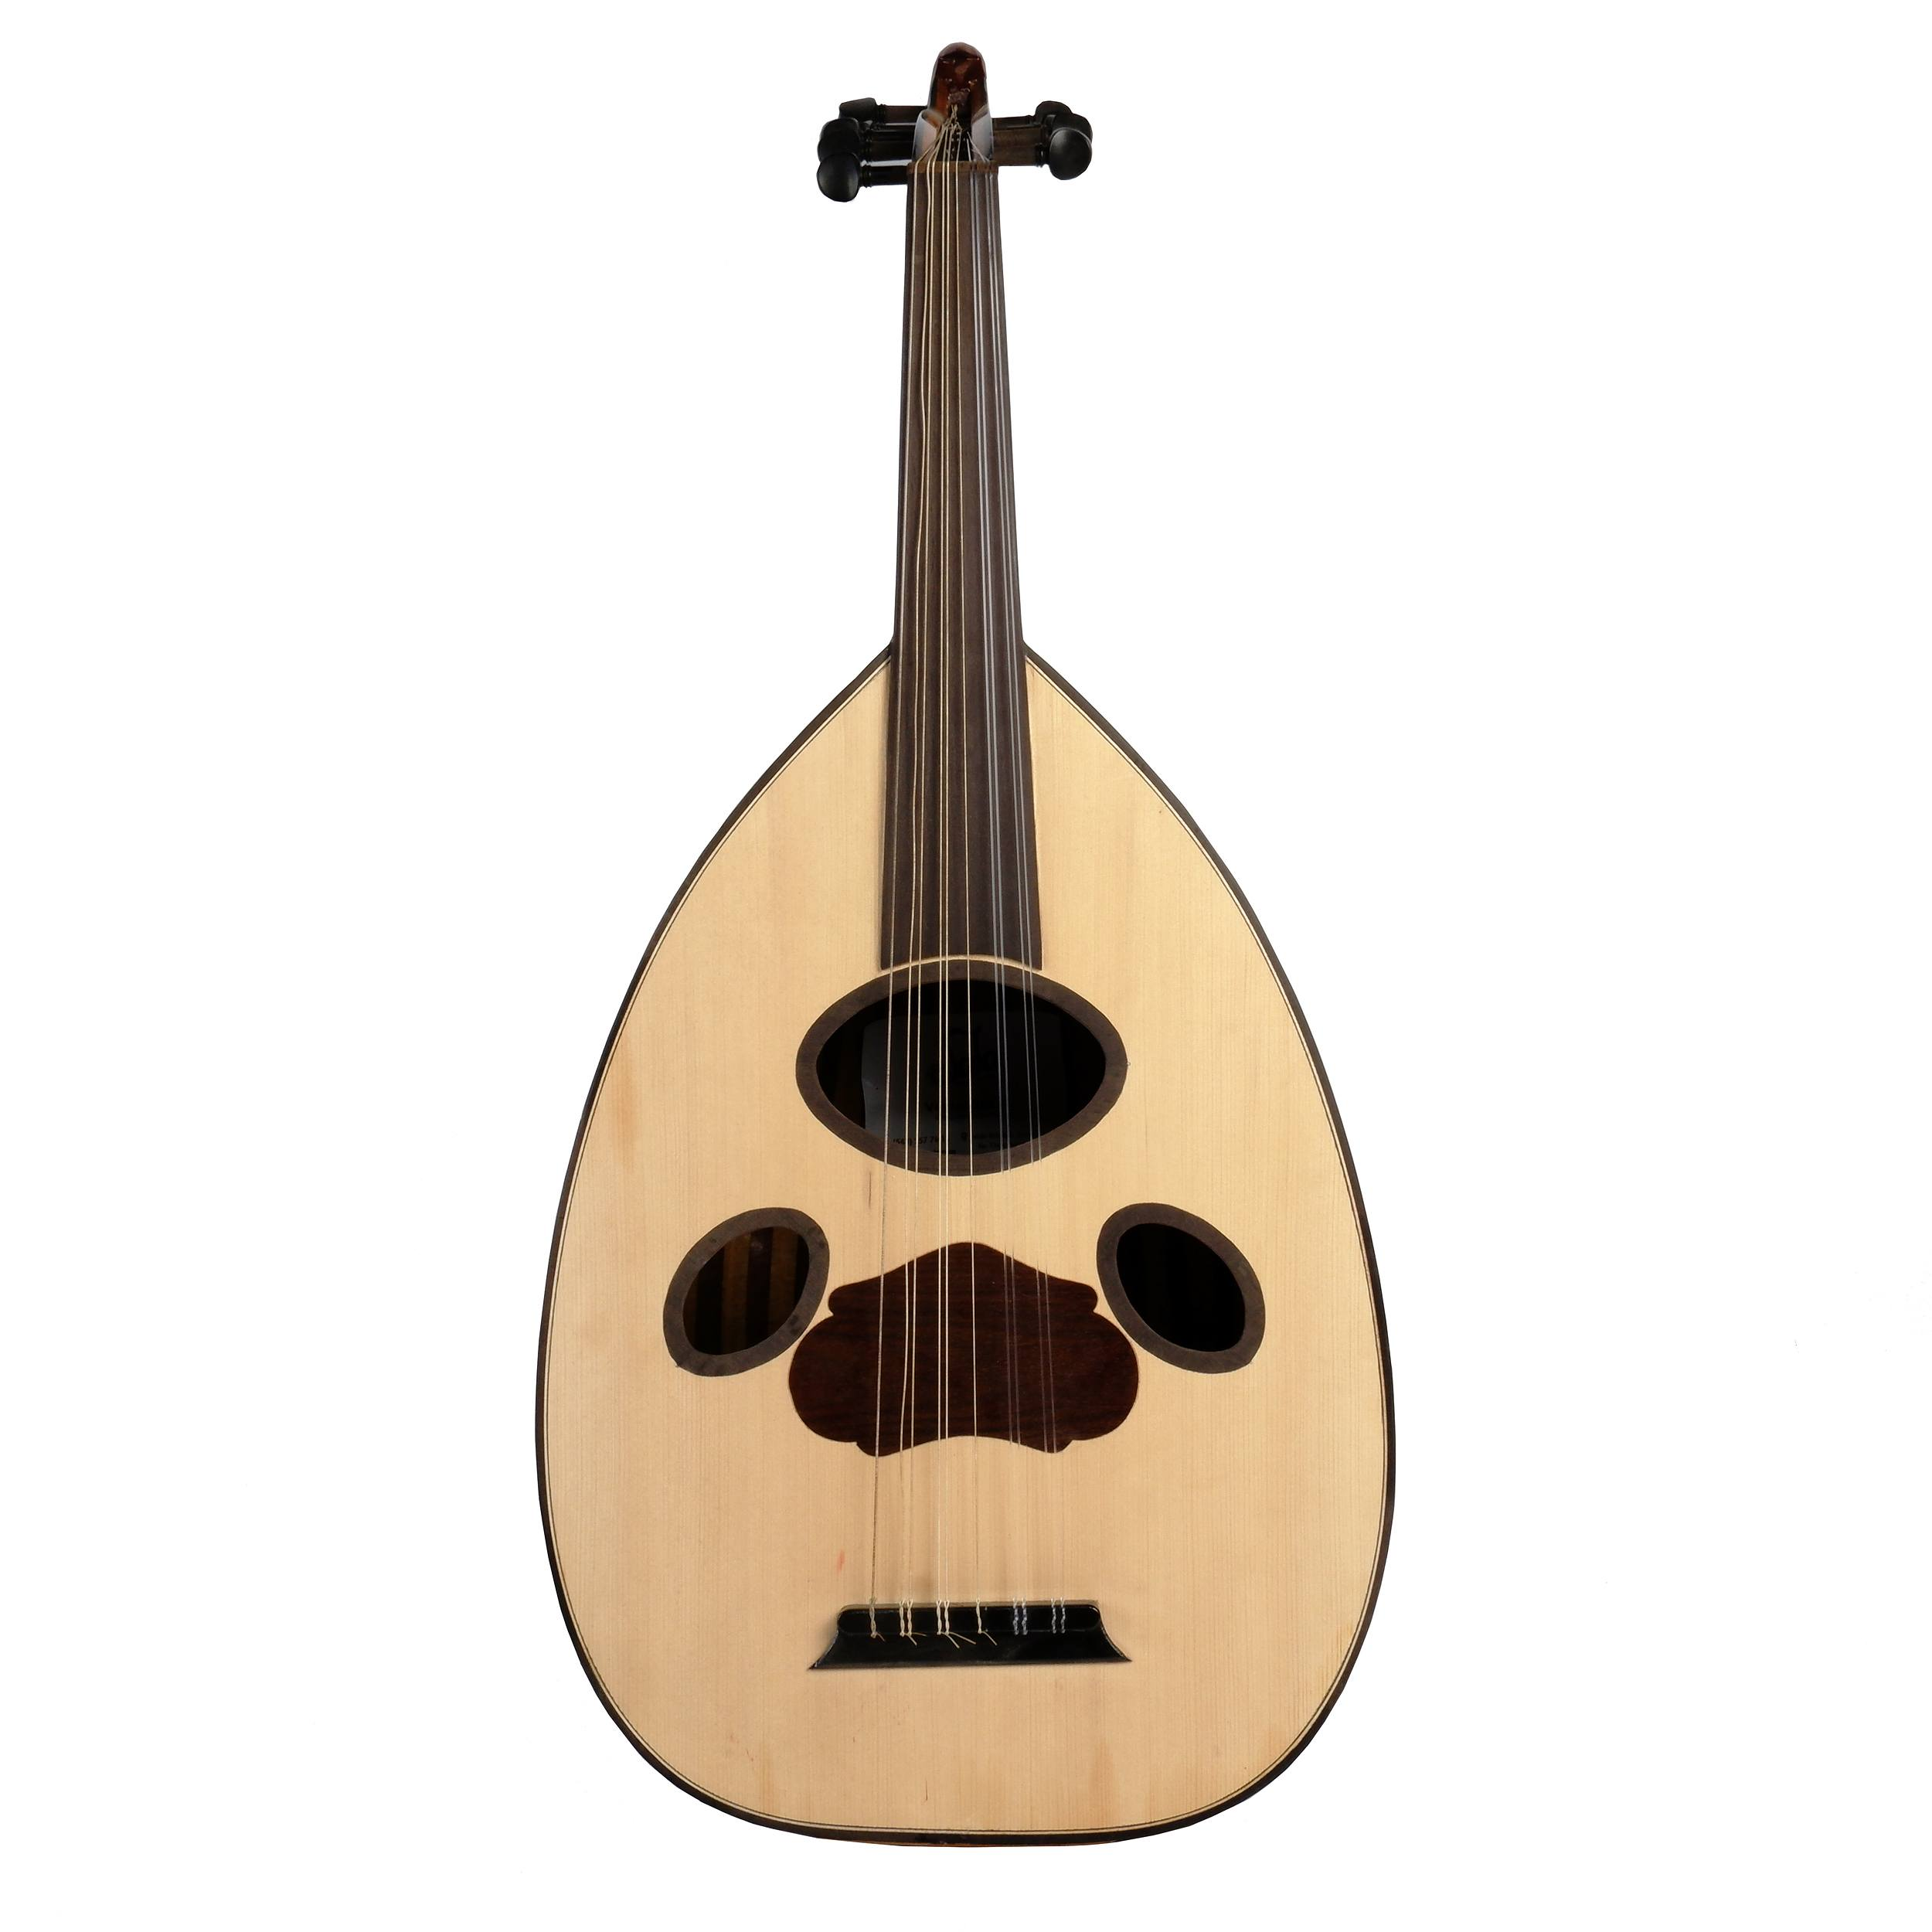 'Vintage Hand Crafted Middle Eastern Eleven String Oud'